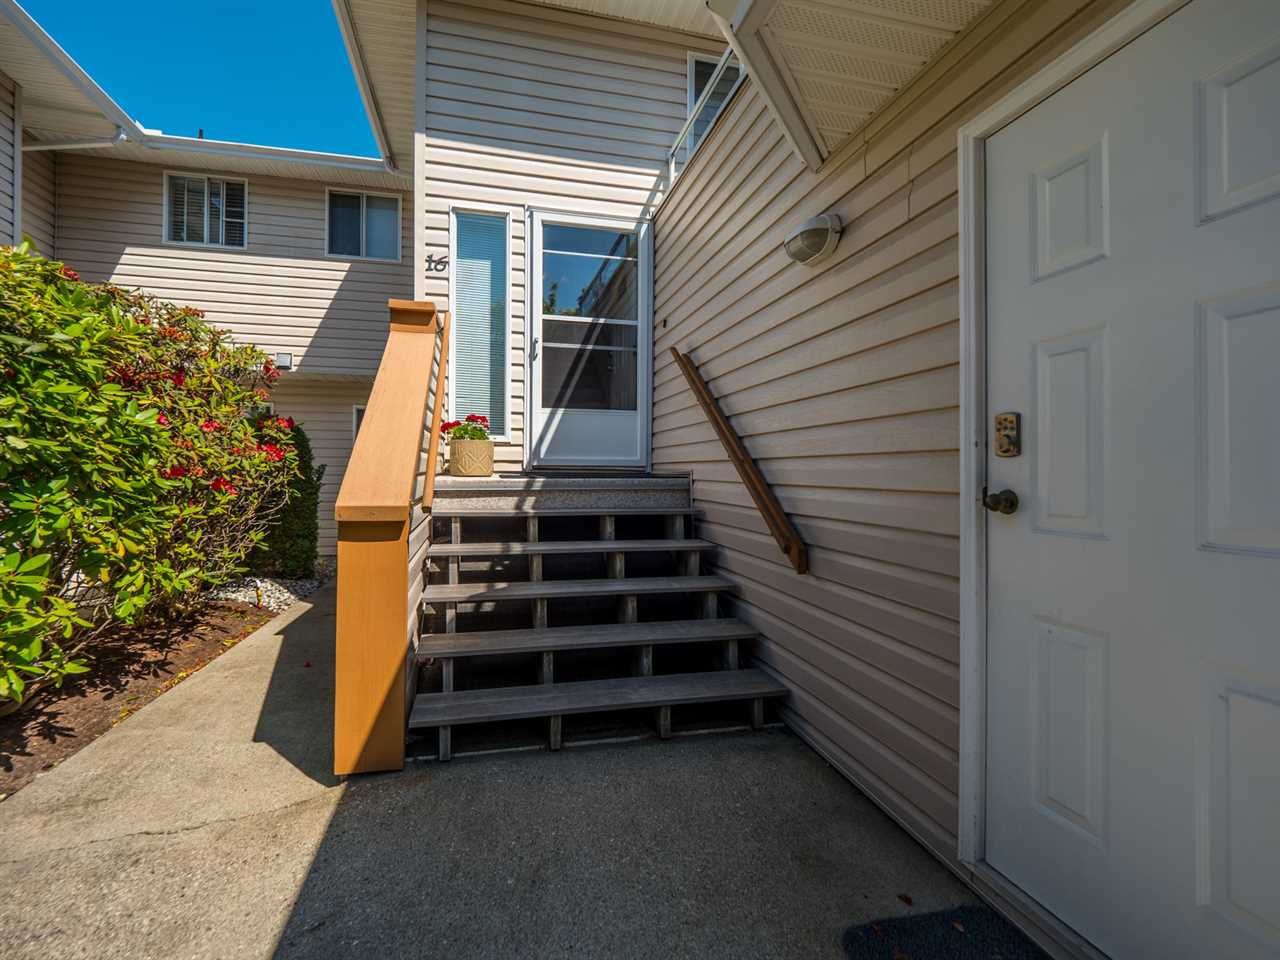 """Photo 19: Photos: 16 5630 TRAIL Avenue in Sechelt: Sechelt District Townhouse for sale in """"HIGHPOINT"""" (Sunshine Coast)  : MLS®# R2382780"""